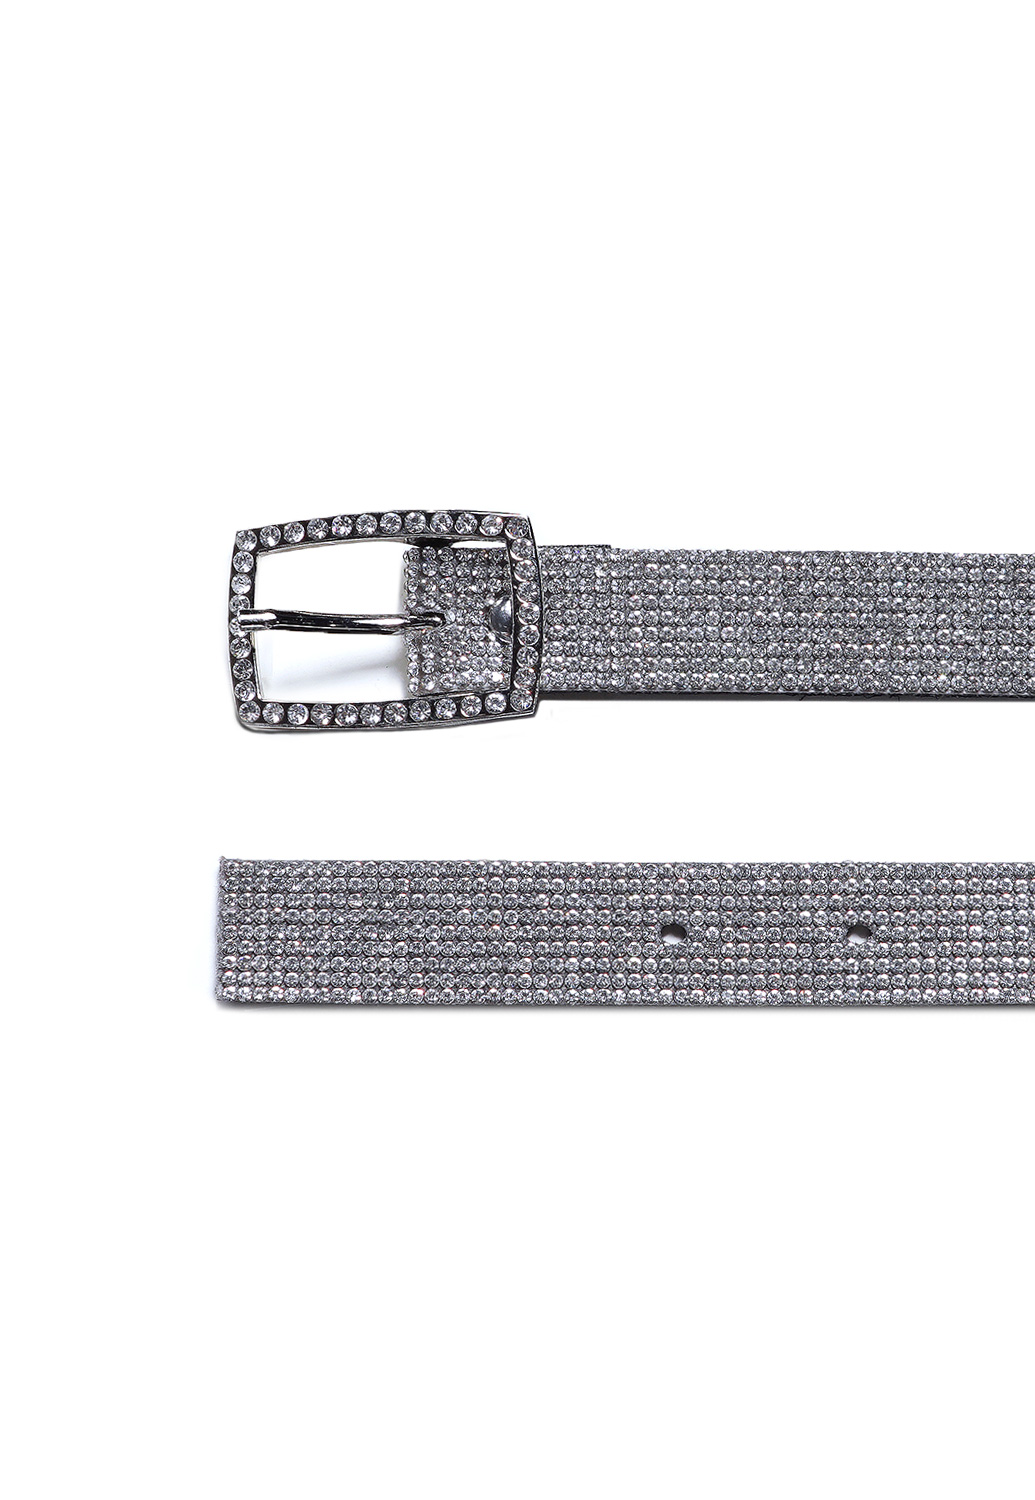 Rhinestone Encrusted Belt